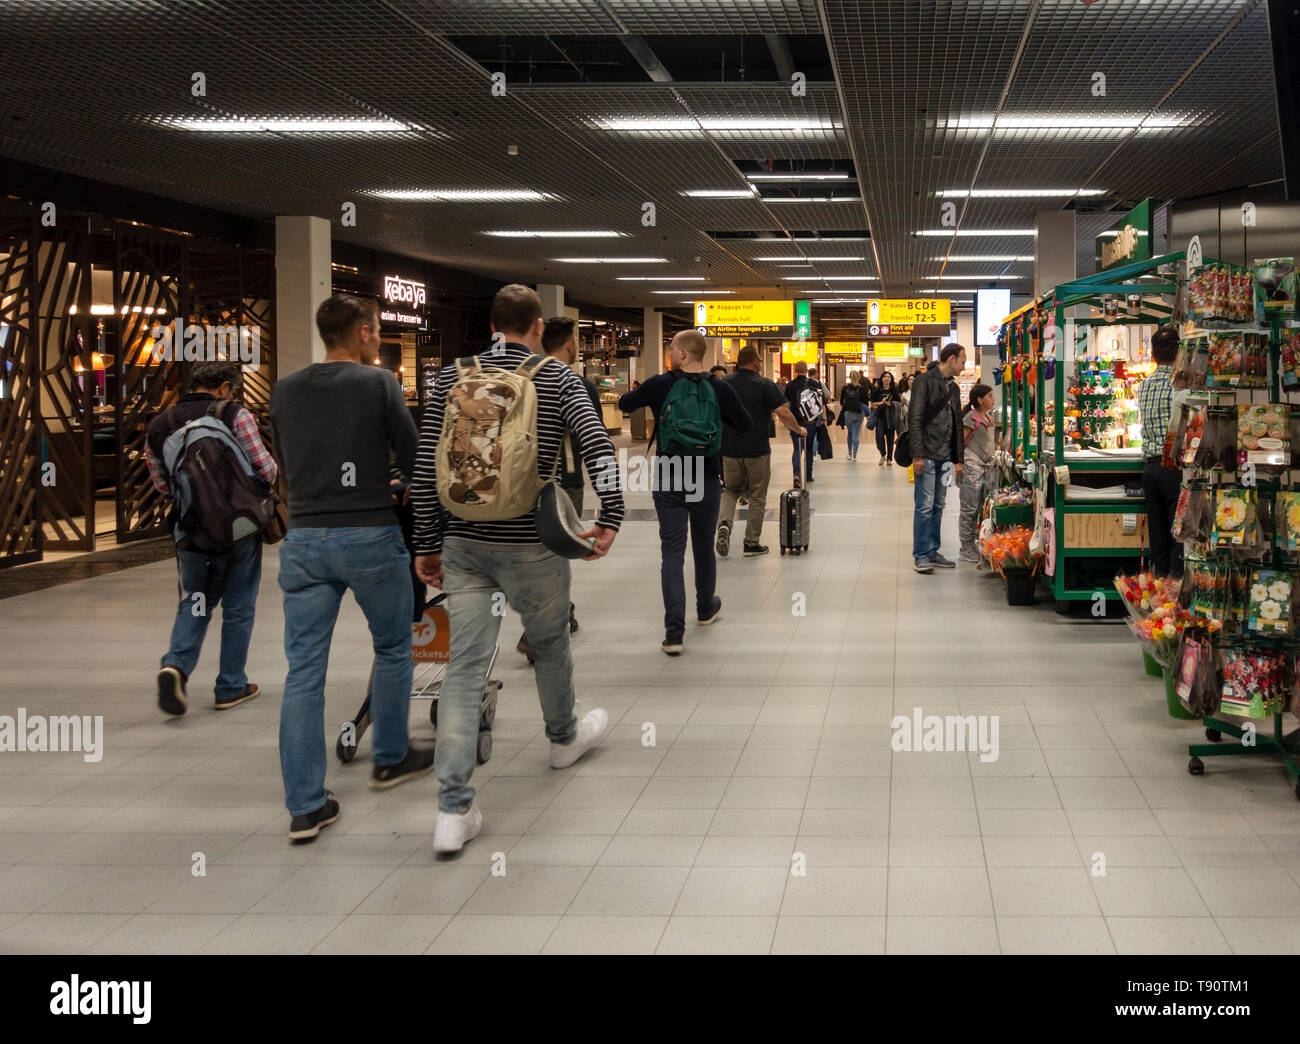 Air passengers walking between shops and restaurants through one of the main councourses of Schiphol Airport, Amsterdam - Stock Image